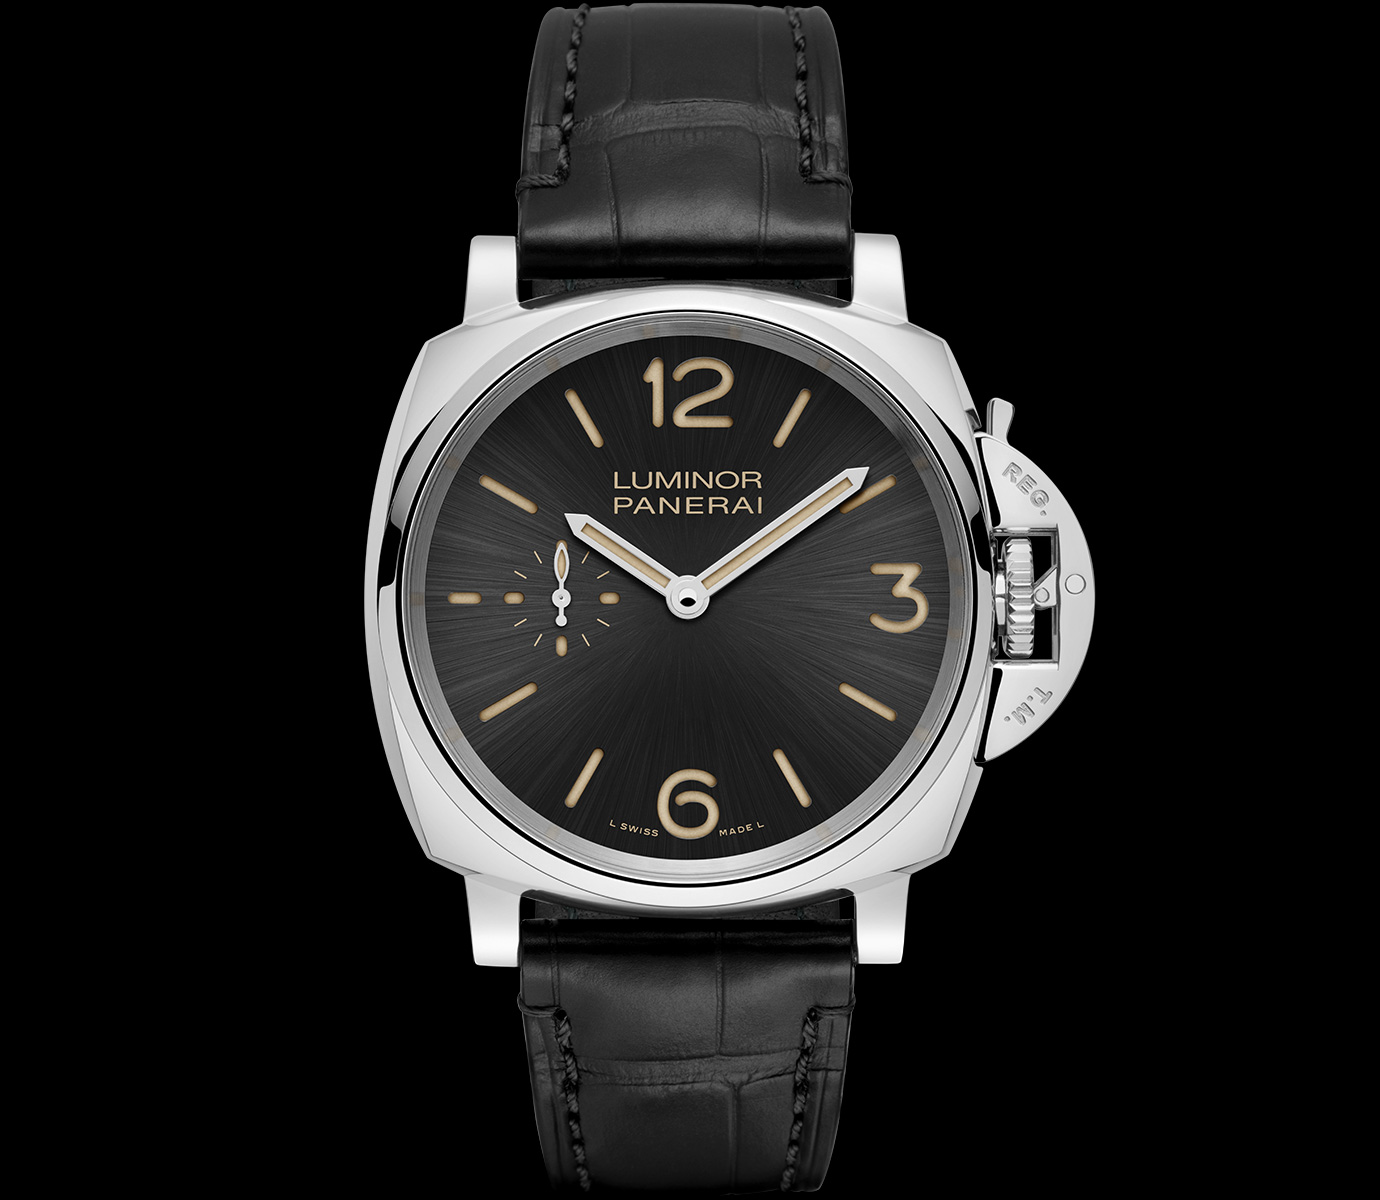 Panerai-Luminor-Due-3-Days-Acciaio-42-mm-6-Horasyminutos